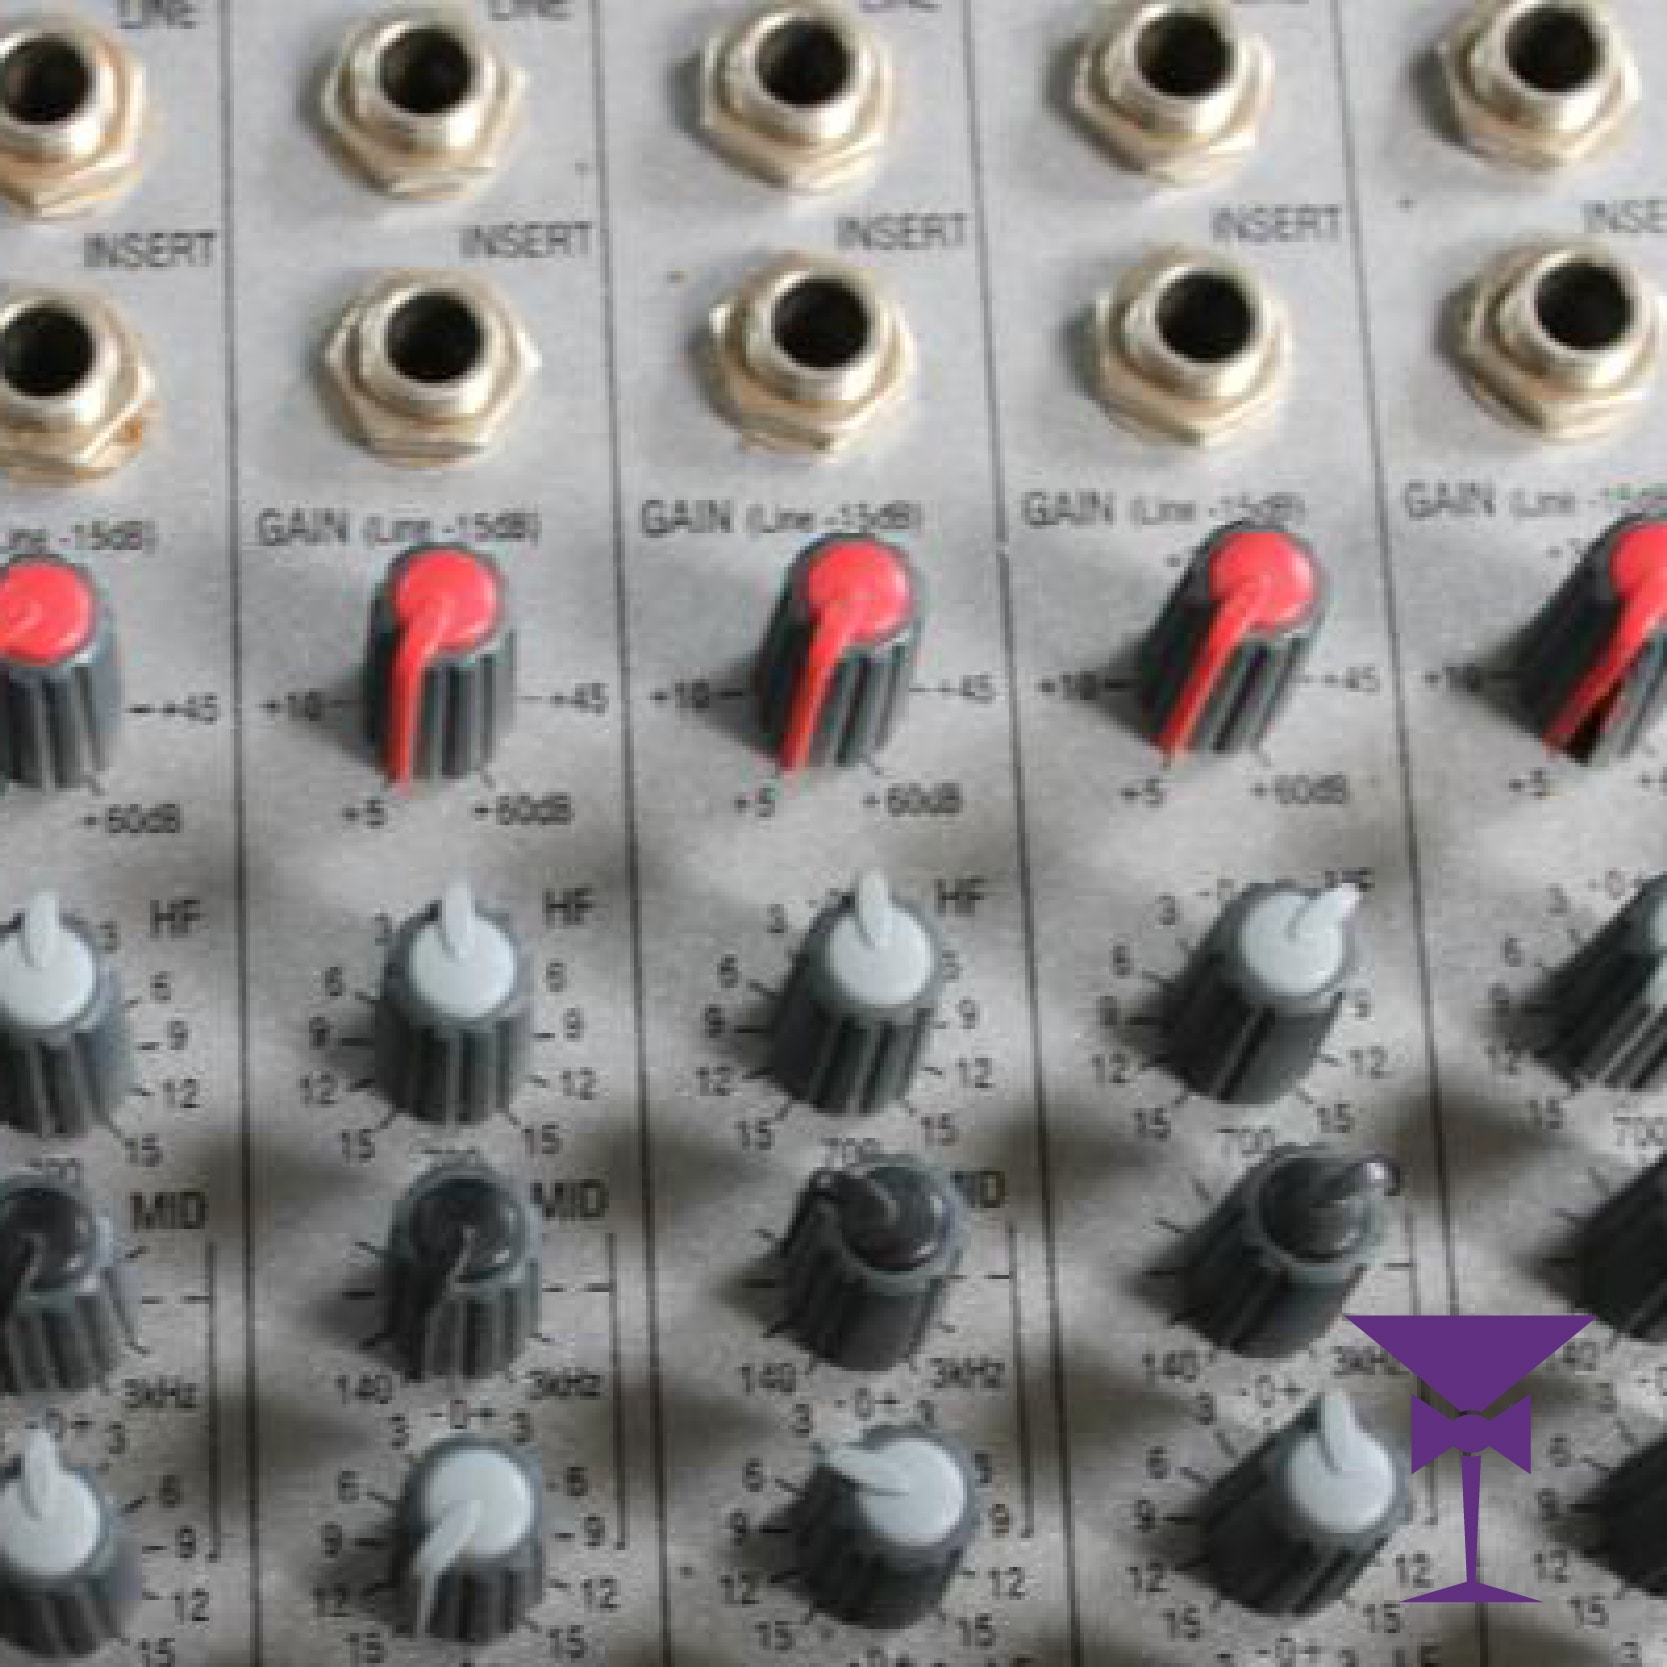 Analogue mixing desks for hire in Surrey, Kent & Sussex